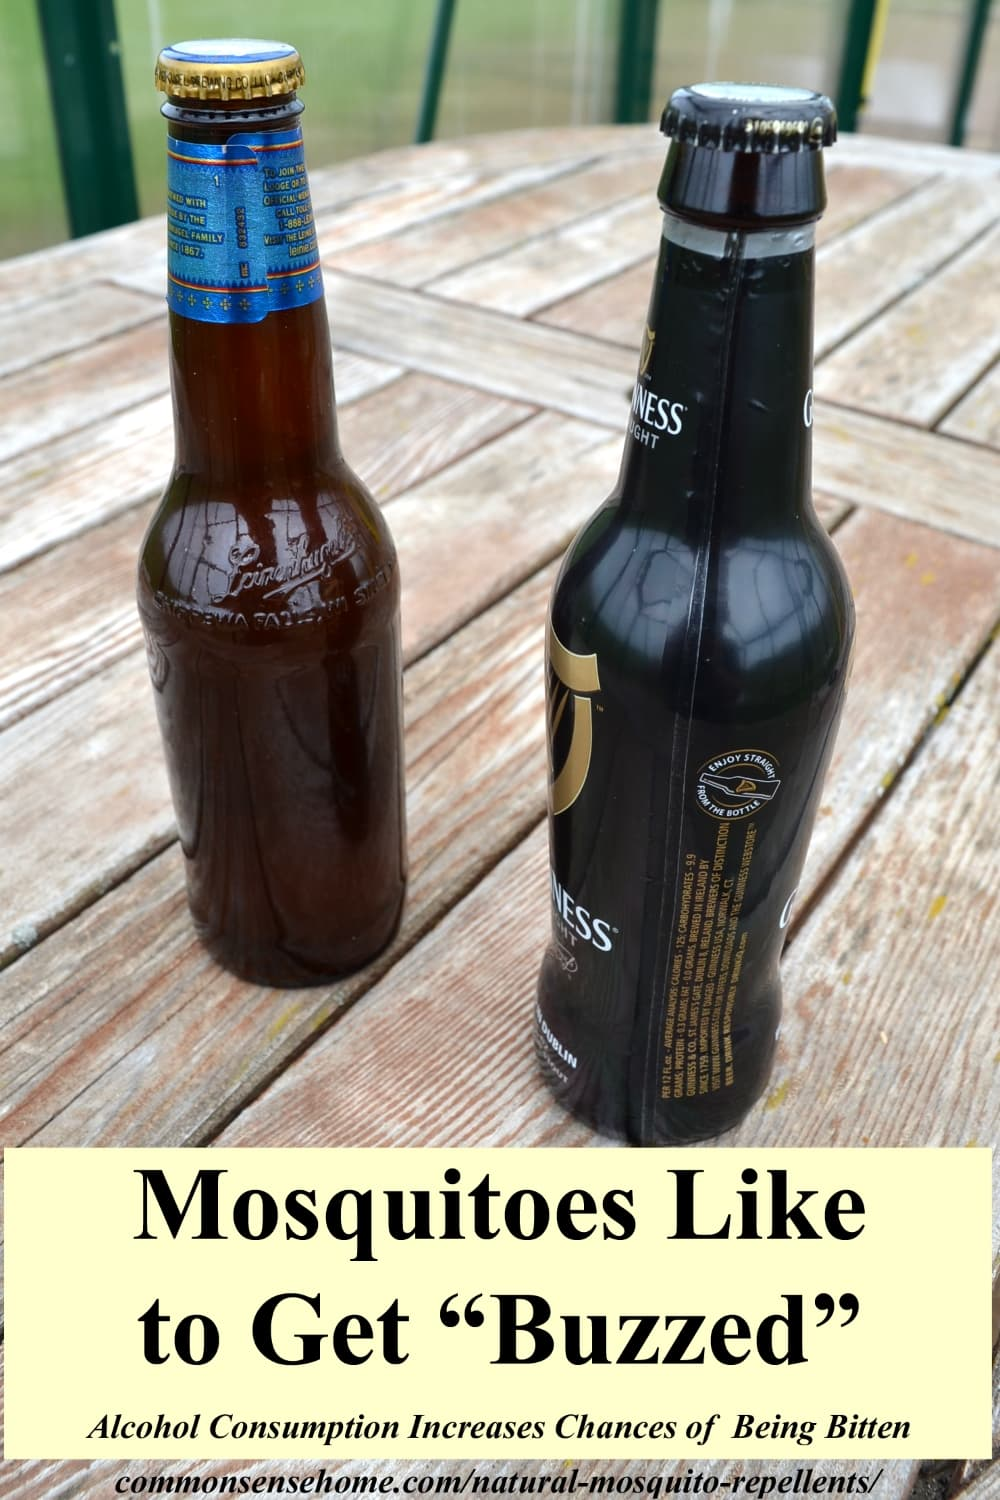 2 natural mosquito repellent recipes, plus the best herbs for mosquito control, 4 reasons some people get bit more than others, and tips to get rid of mosquitoes.